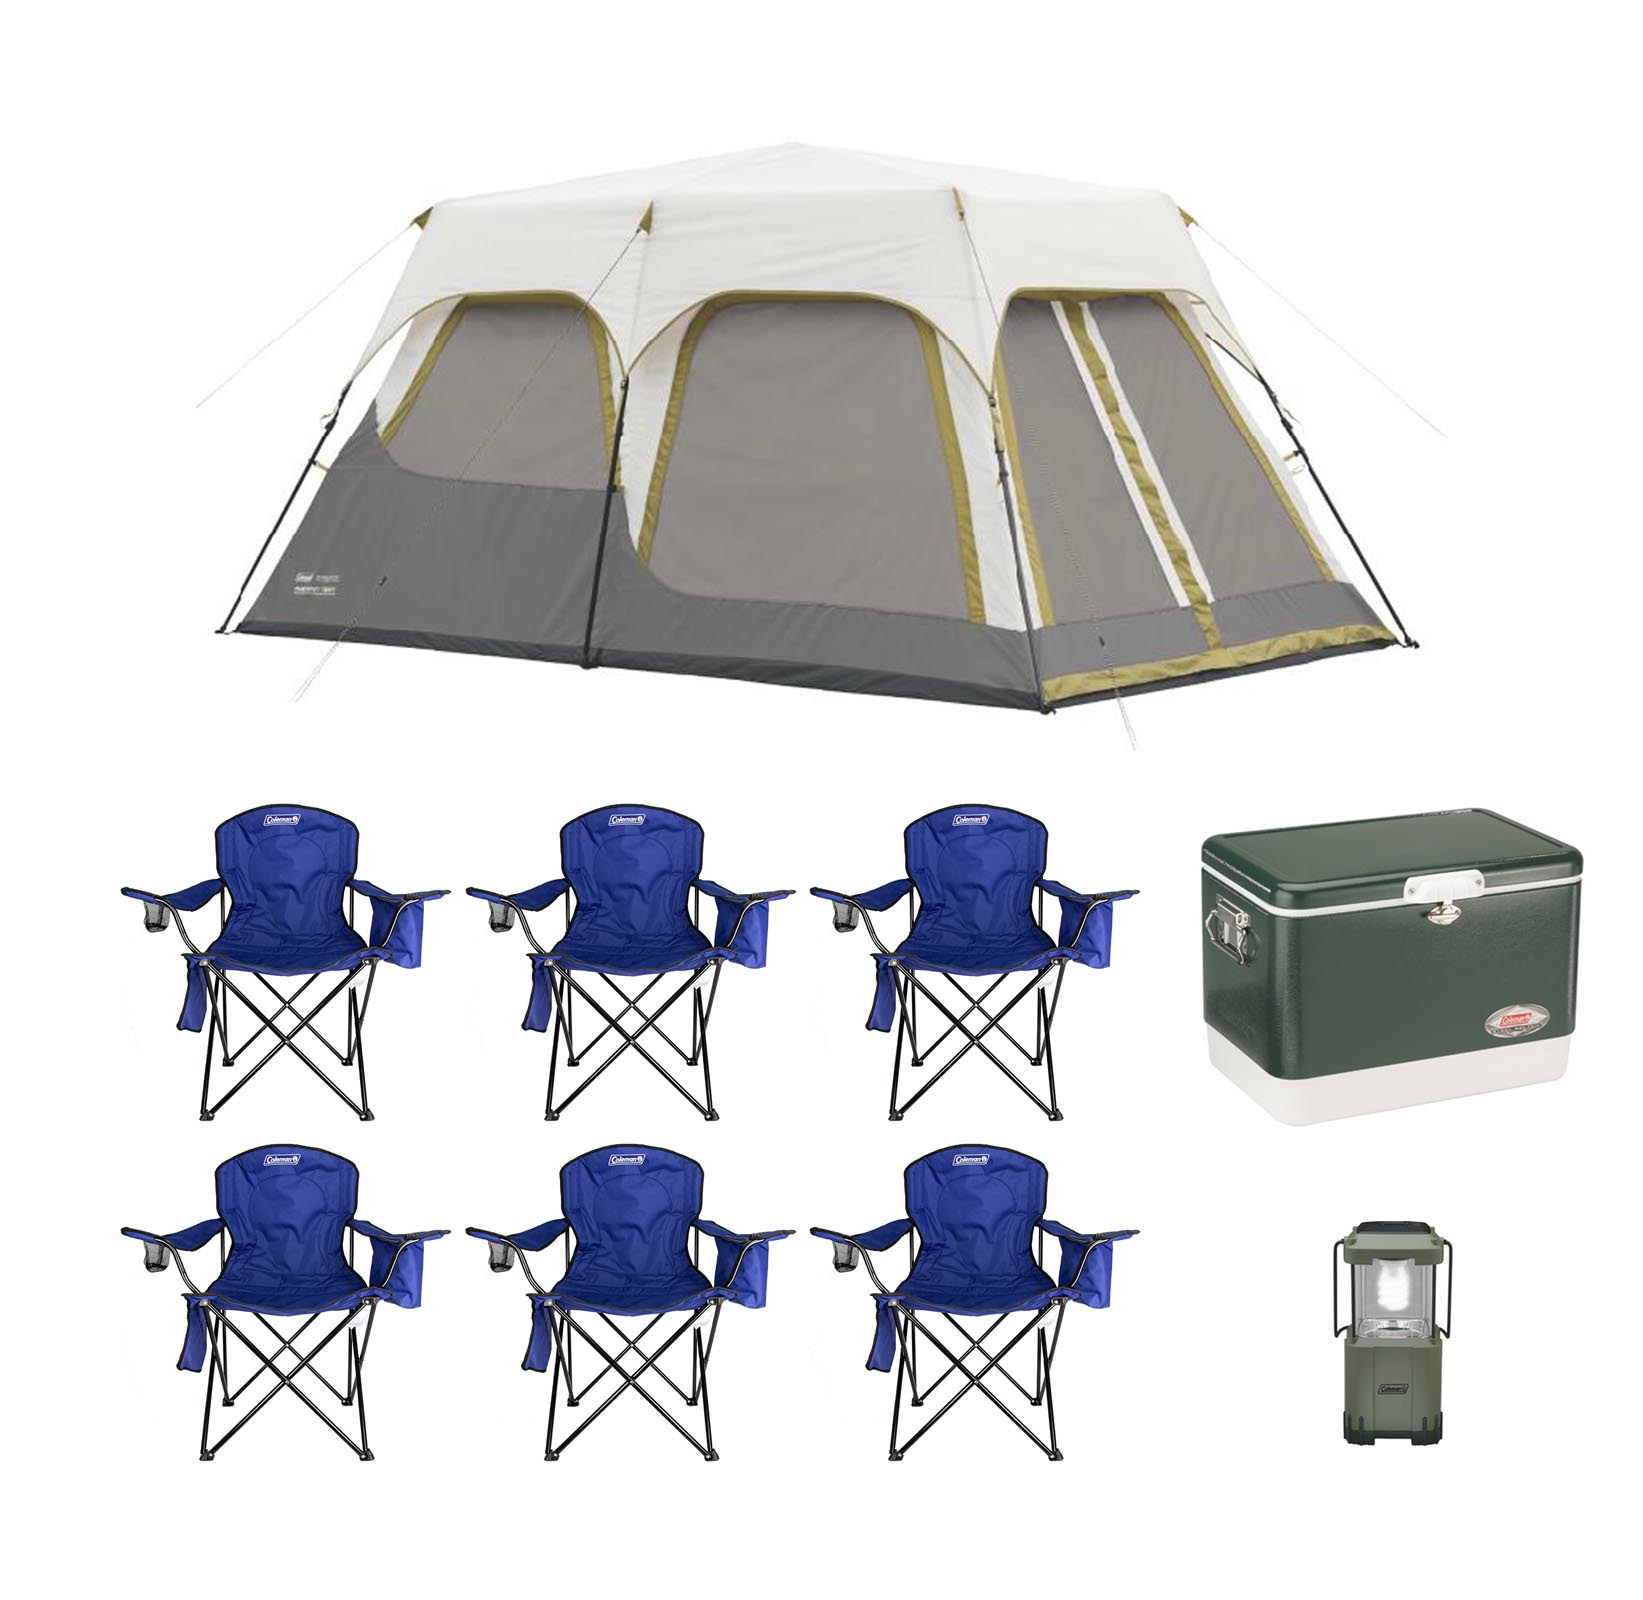 Coleman 8 Person C&ing Instant Tent Bundle w/ 6 Chairs + Lantern + 54qt Cooler  sc 1 st  Walmart & Coleman 8 Person Camping Instant Tent Bundle w/ 6 Chairs + Lantern + ...